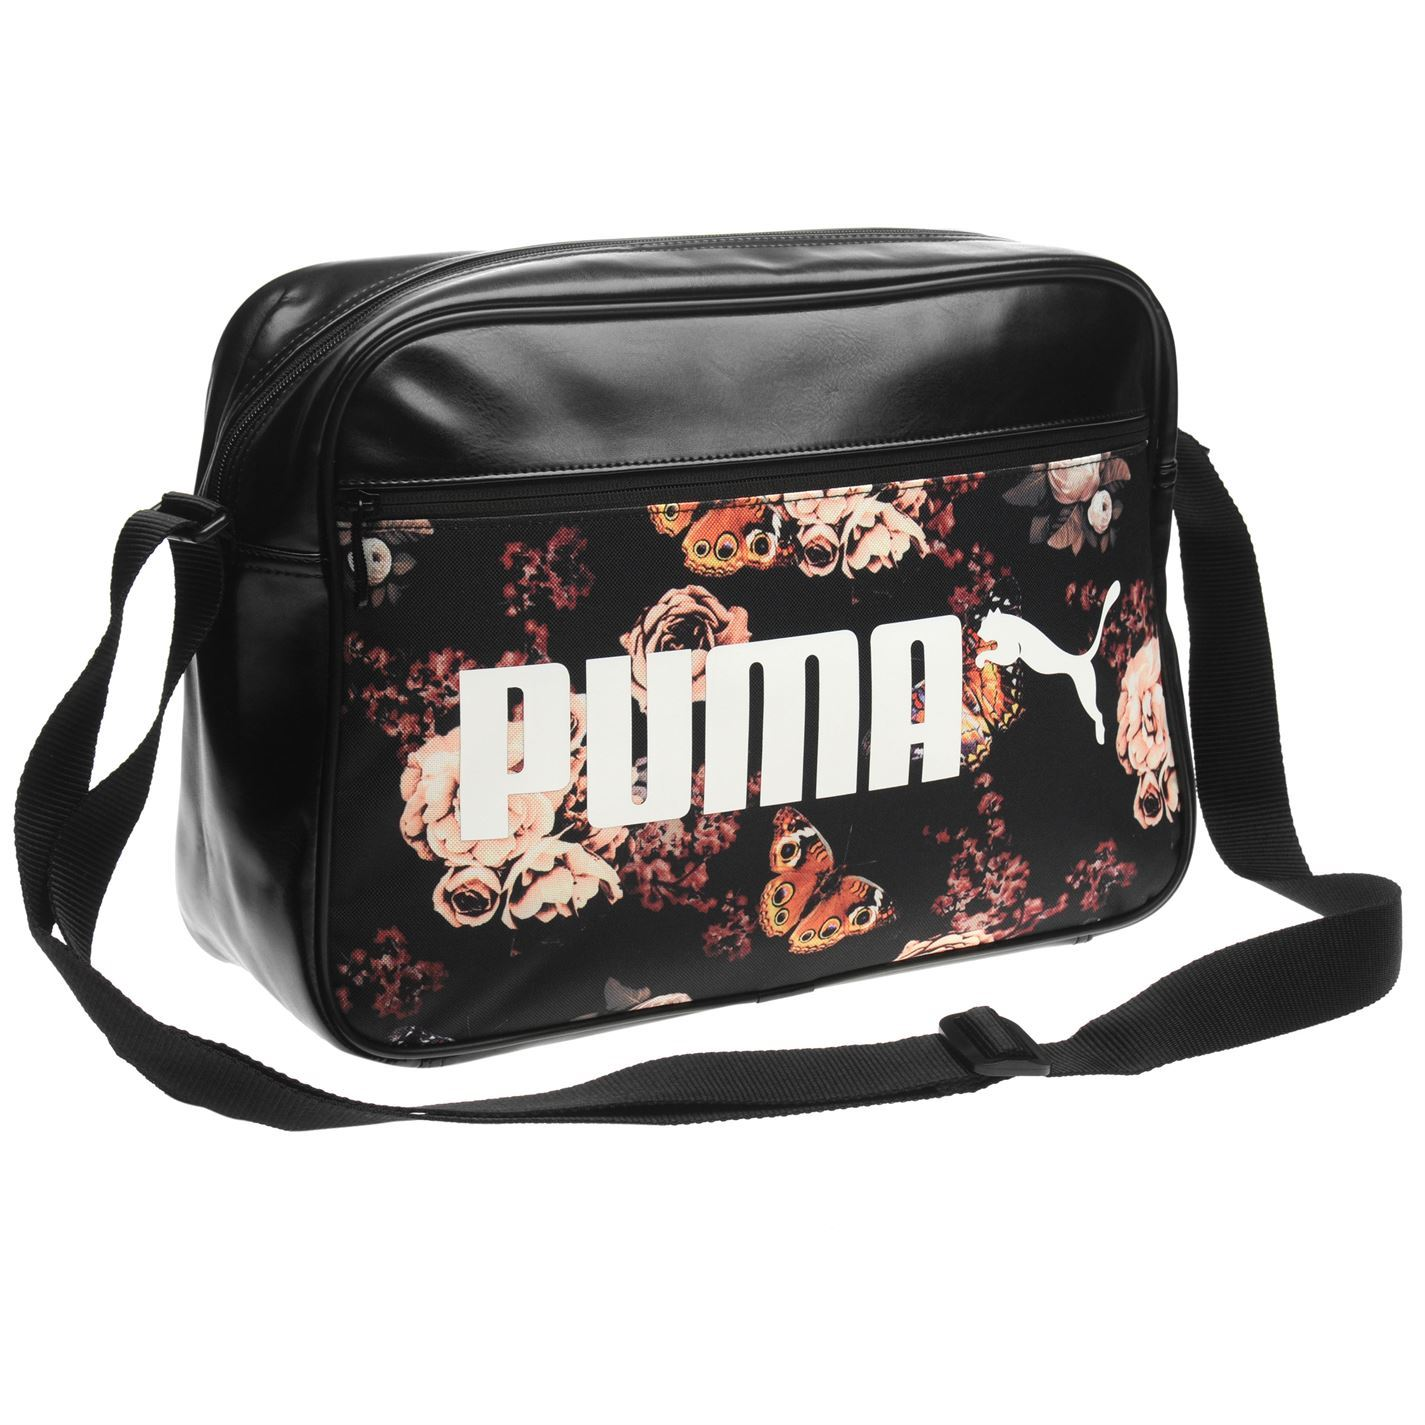 ... Puma Flower Campus Reporter Bag Black Messenger Flight Bag Holdall ... 2e3c18c65c19f